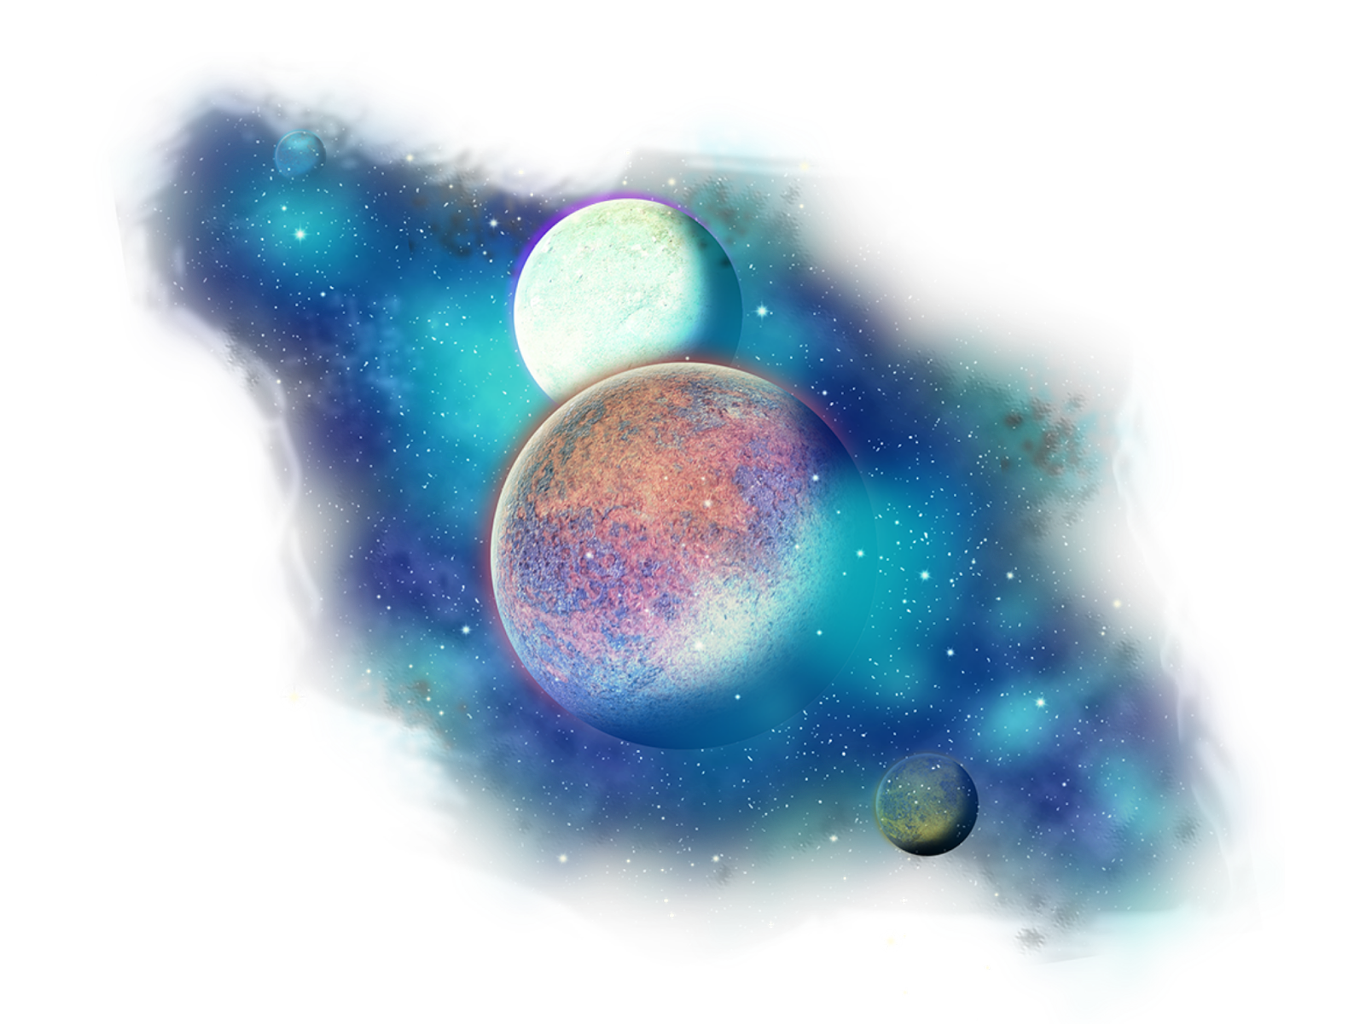 clipart transparent stock Galaxy clipart. Freetoedit png stars planets